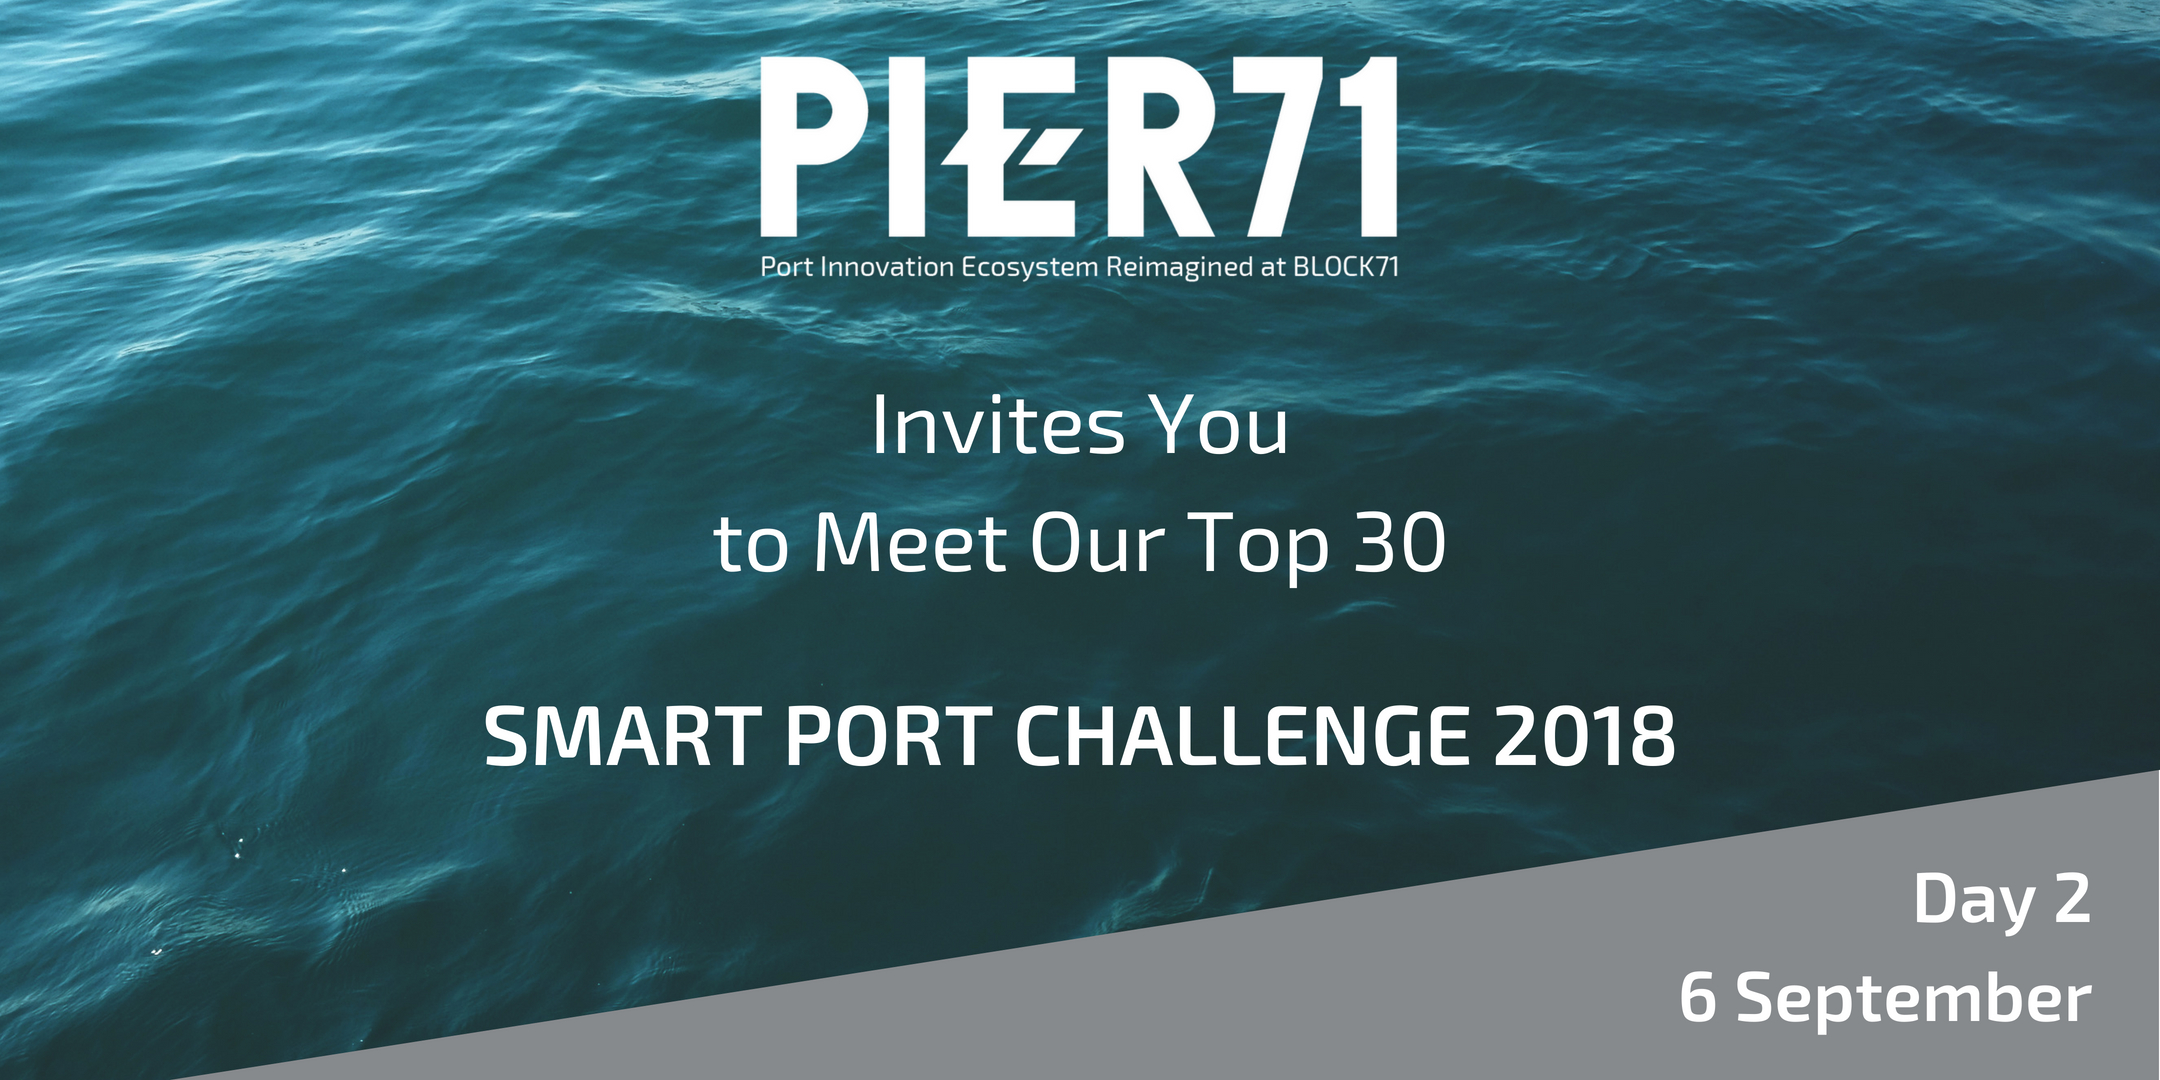 PIER71 Smart Port Challenge – Meet the Top 30 (Day 2)